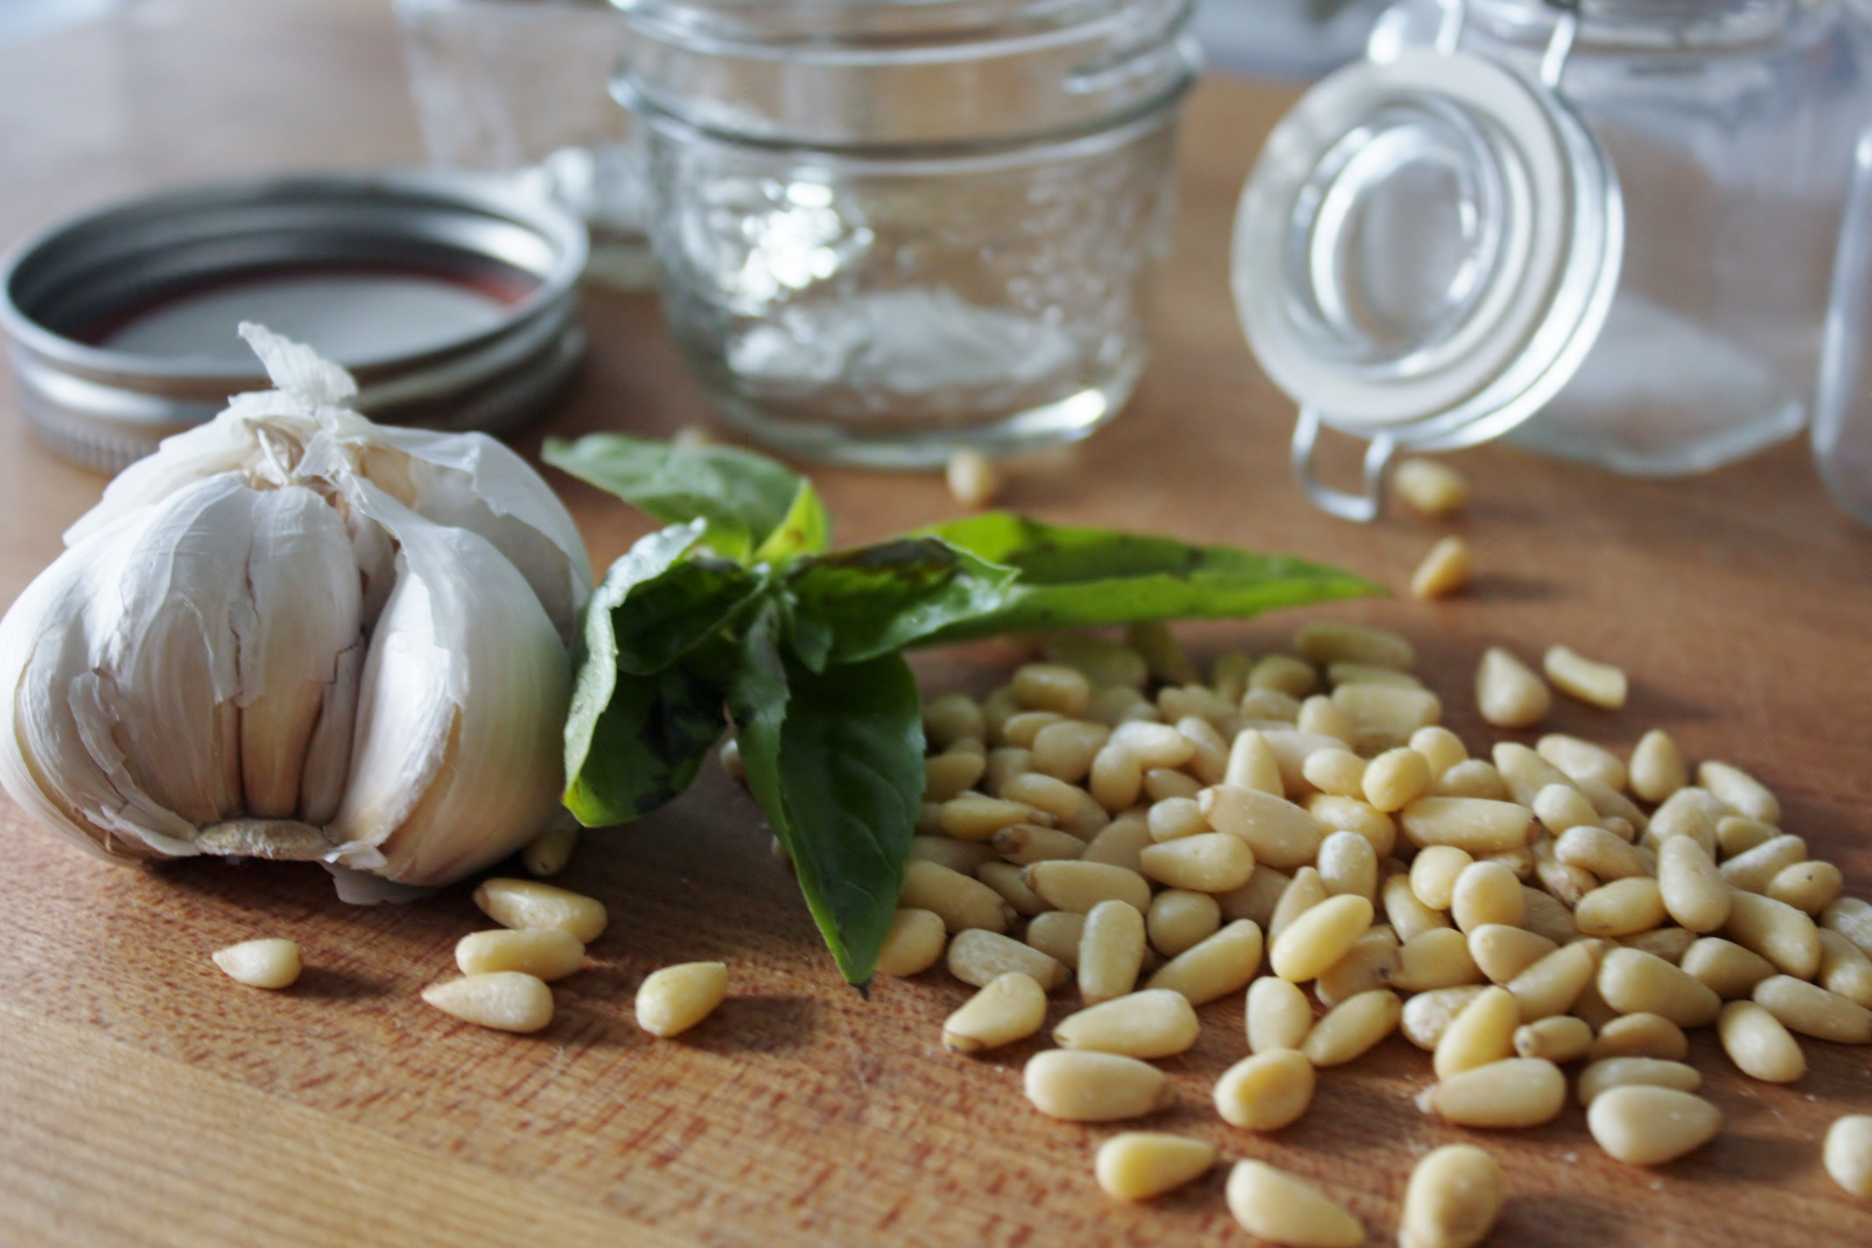 Garlic, basil and pine nuts